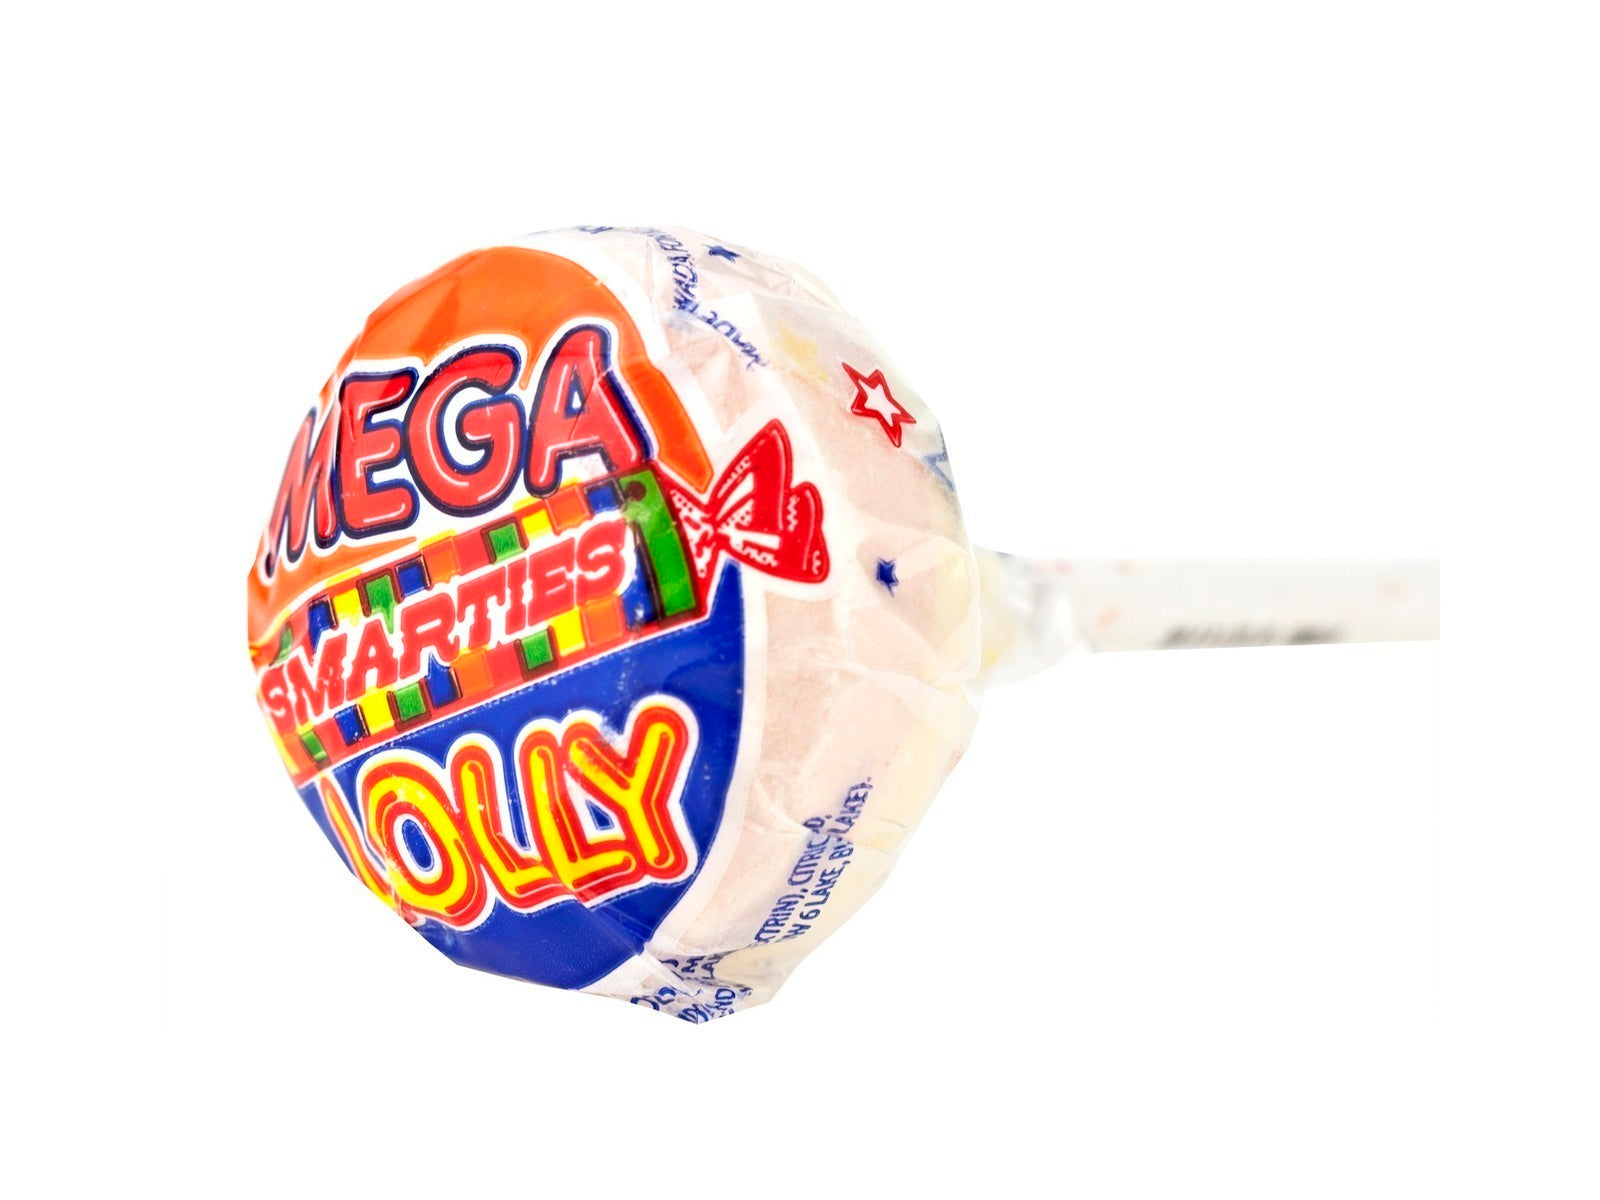 Pack of 6, Smarties Mega Lolly, 1.1oz